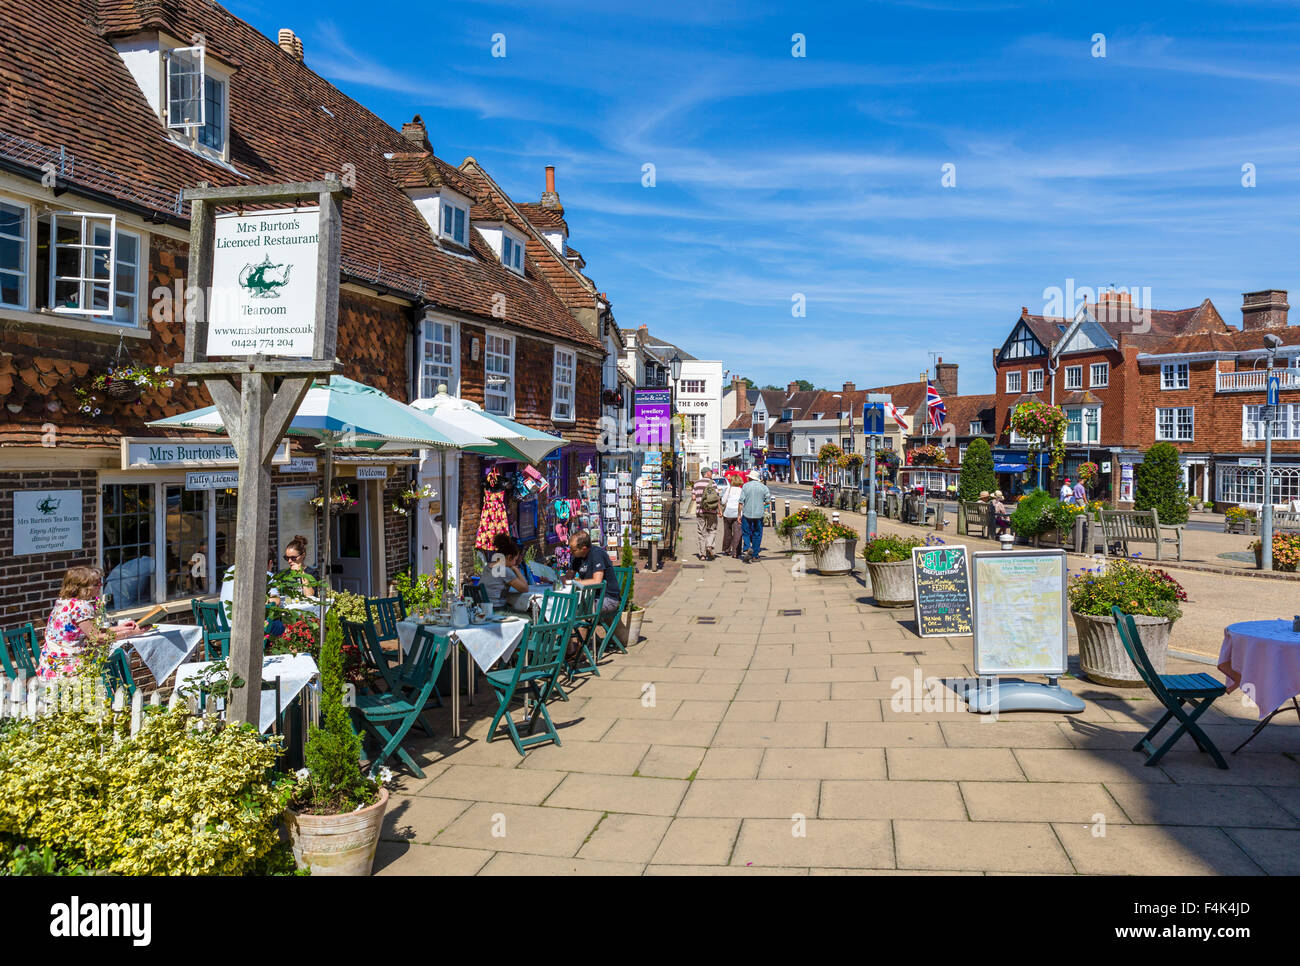 Mrs Burton's Restaurant and Tearoom on the High Street in Battle, site of the Battle of Hastings, East Sussex England, Stock Photo